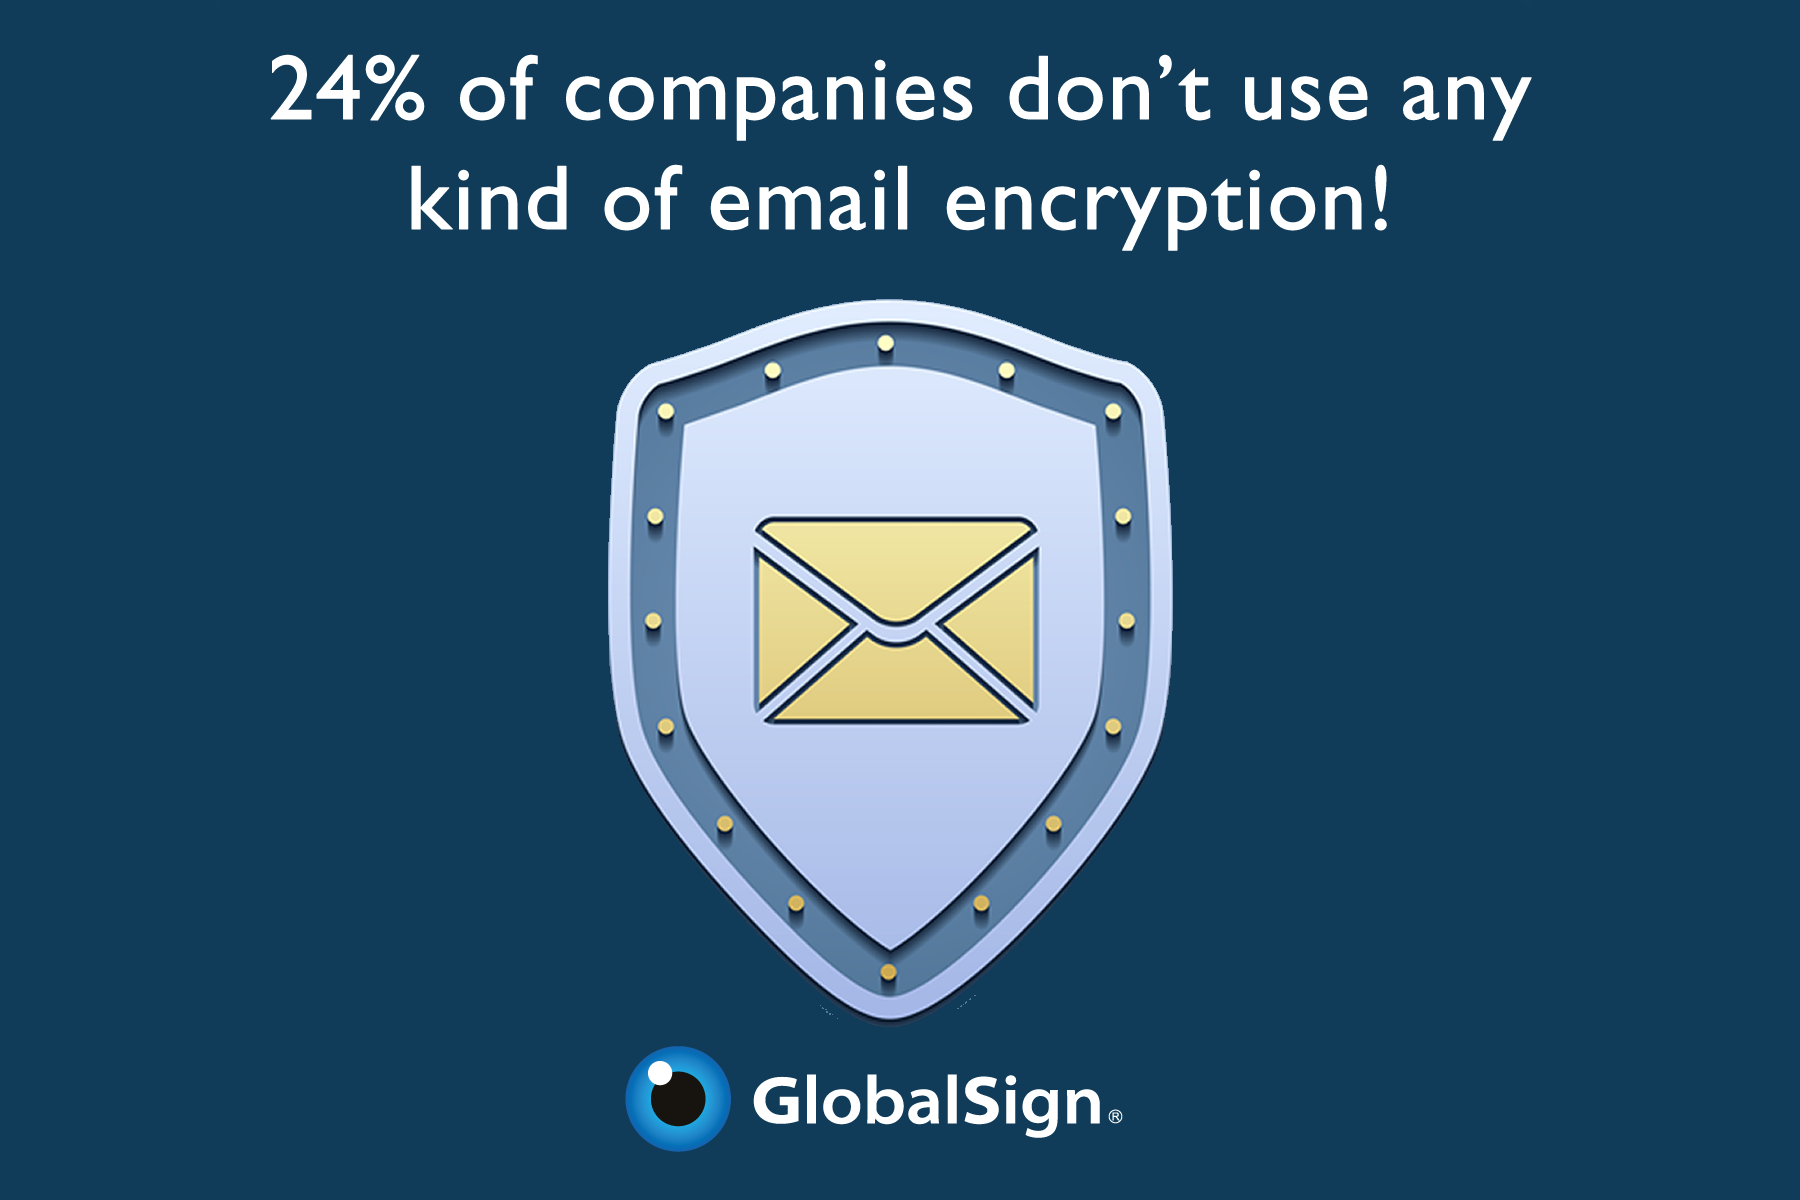 24_of_companies_dont_use_any_kind_of_email_encryption_LN.fw.png